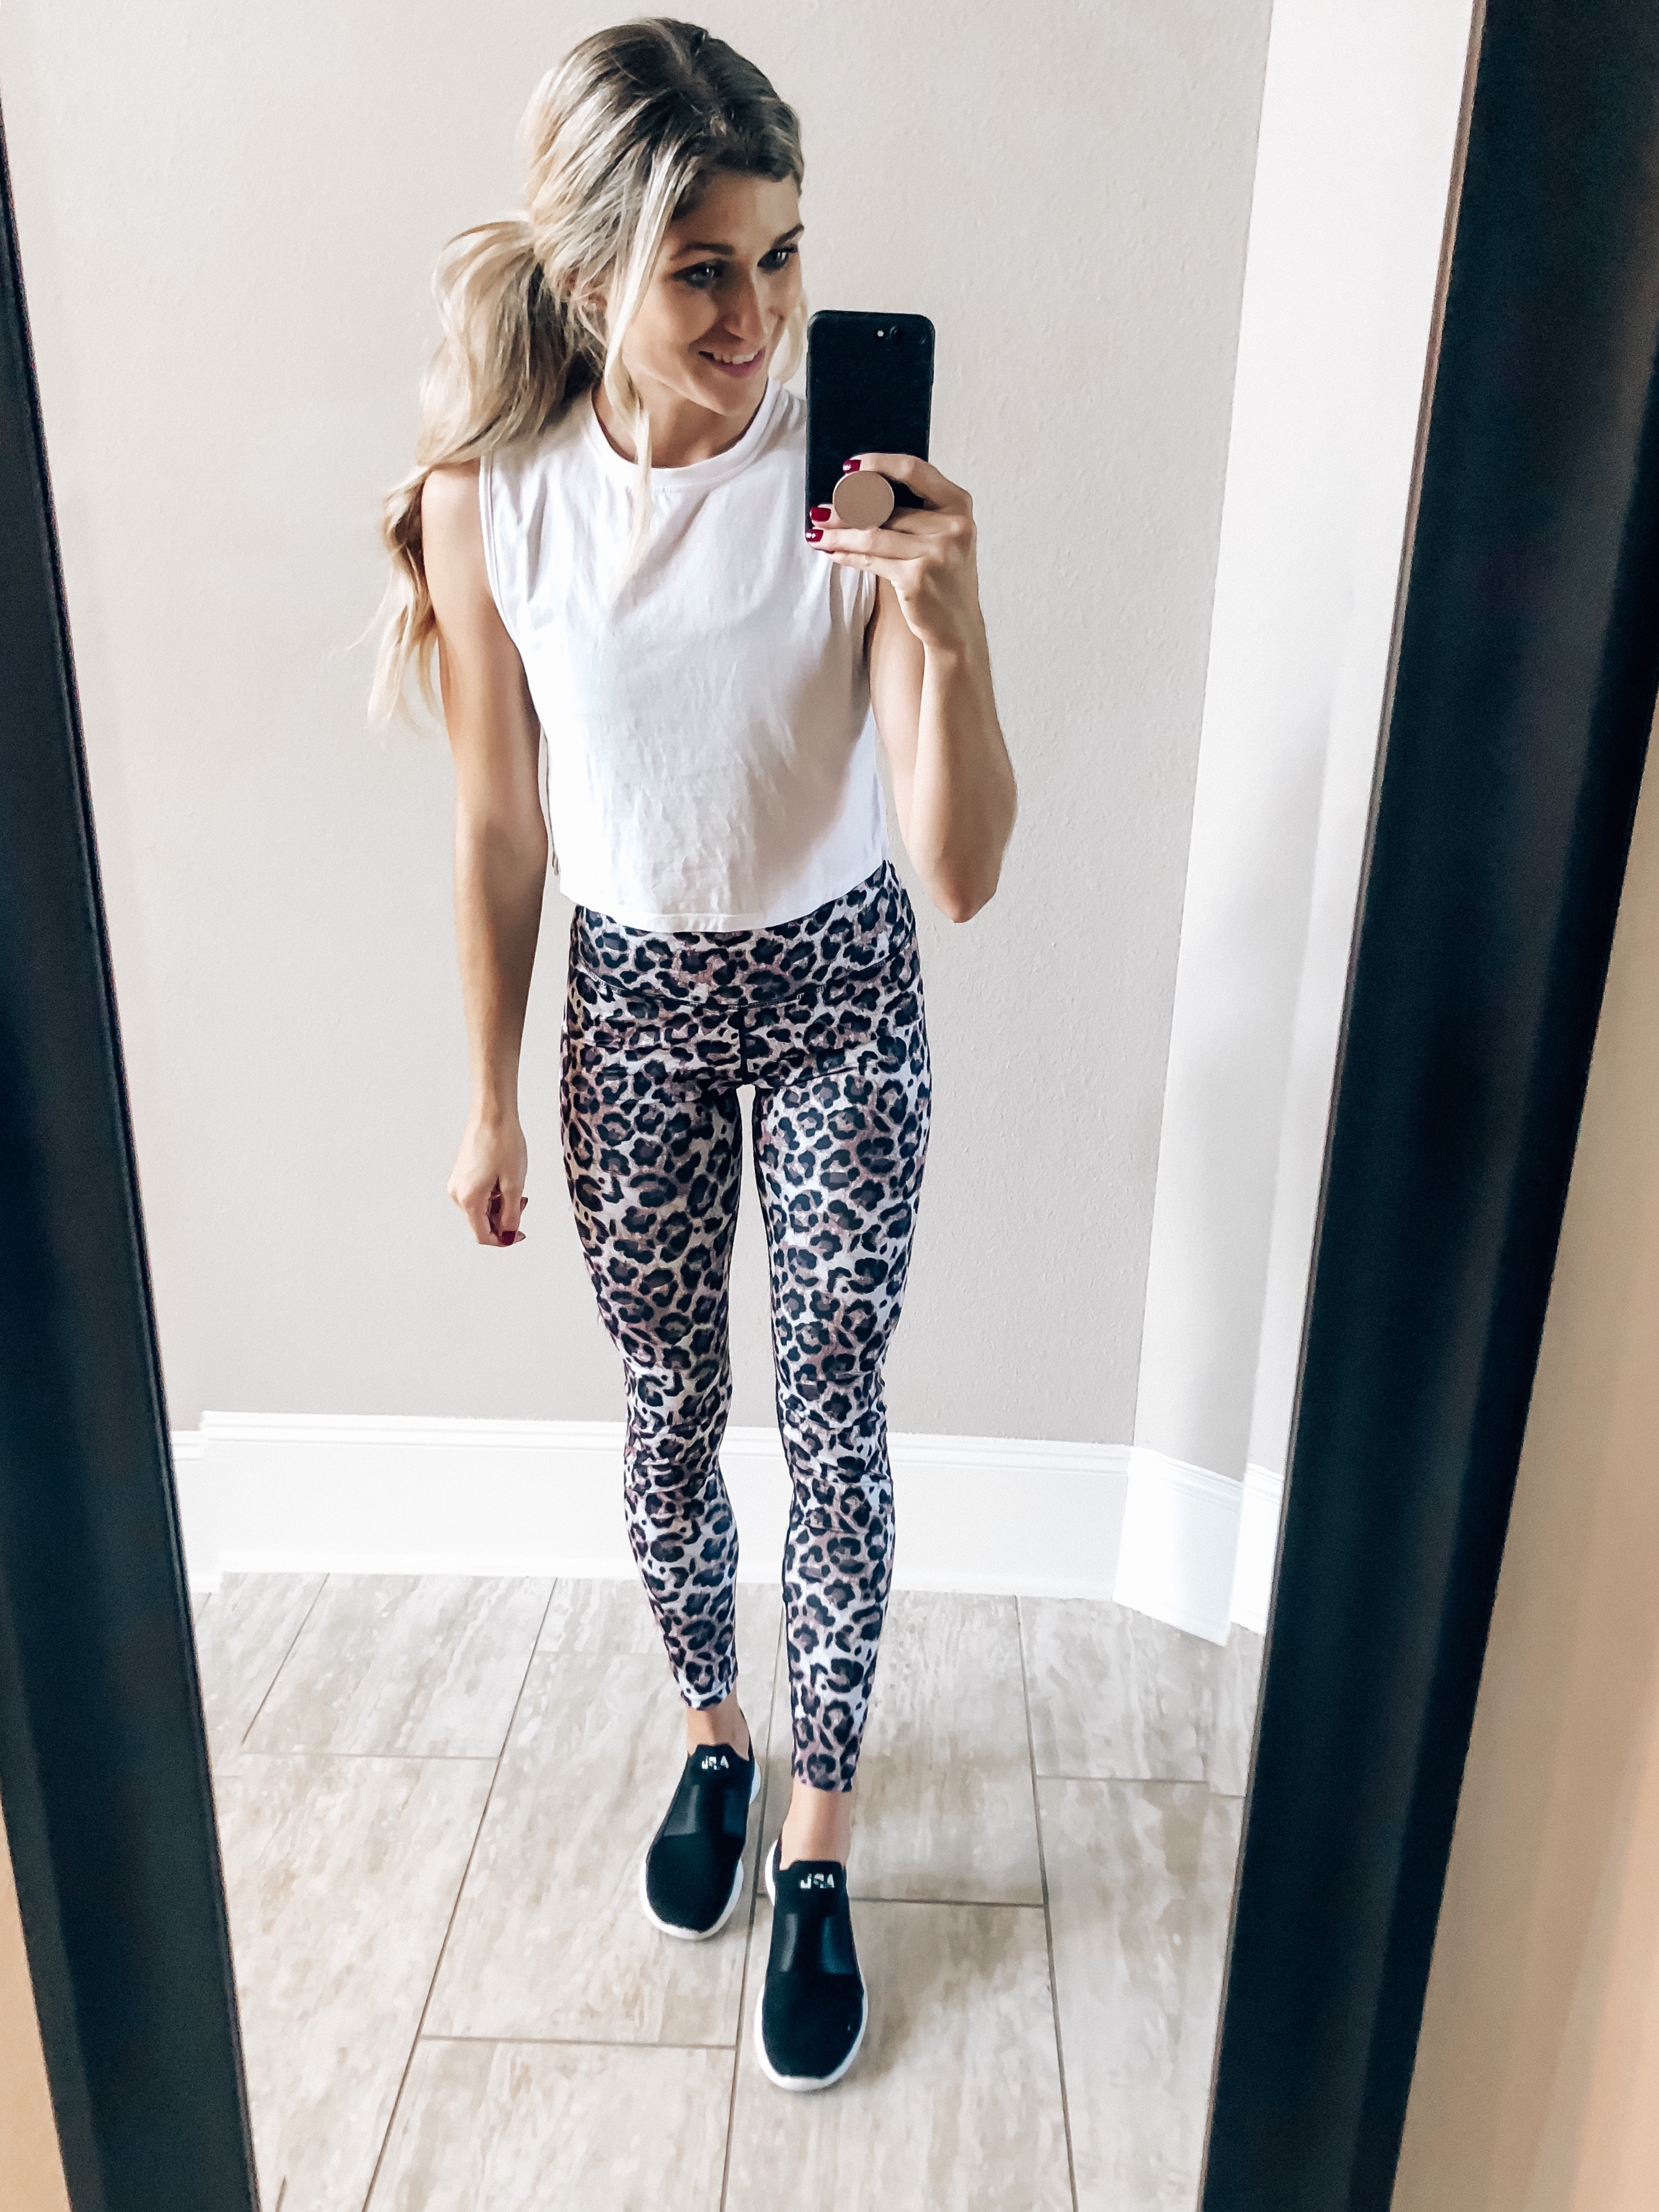 leopard leggings workout outfit